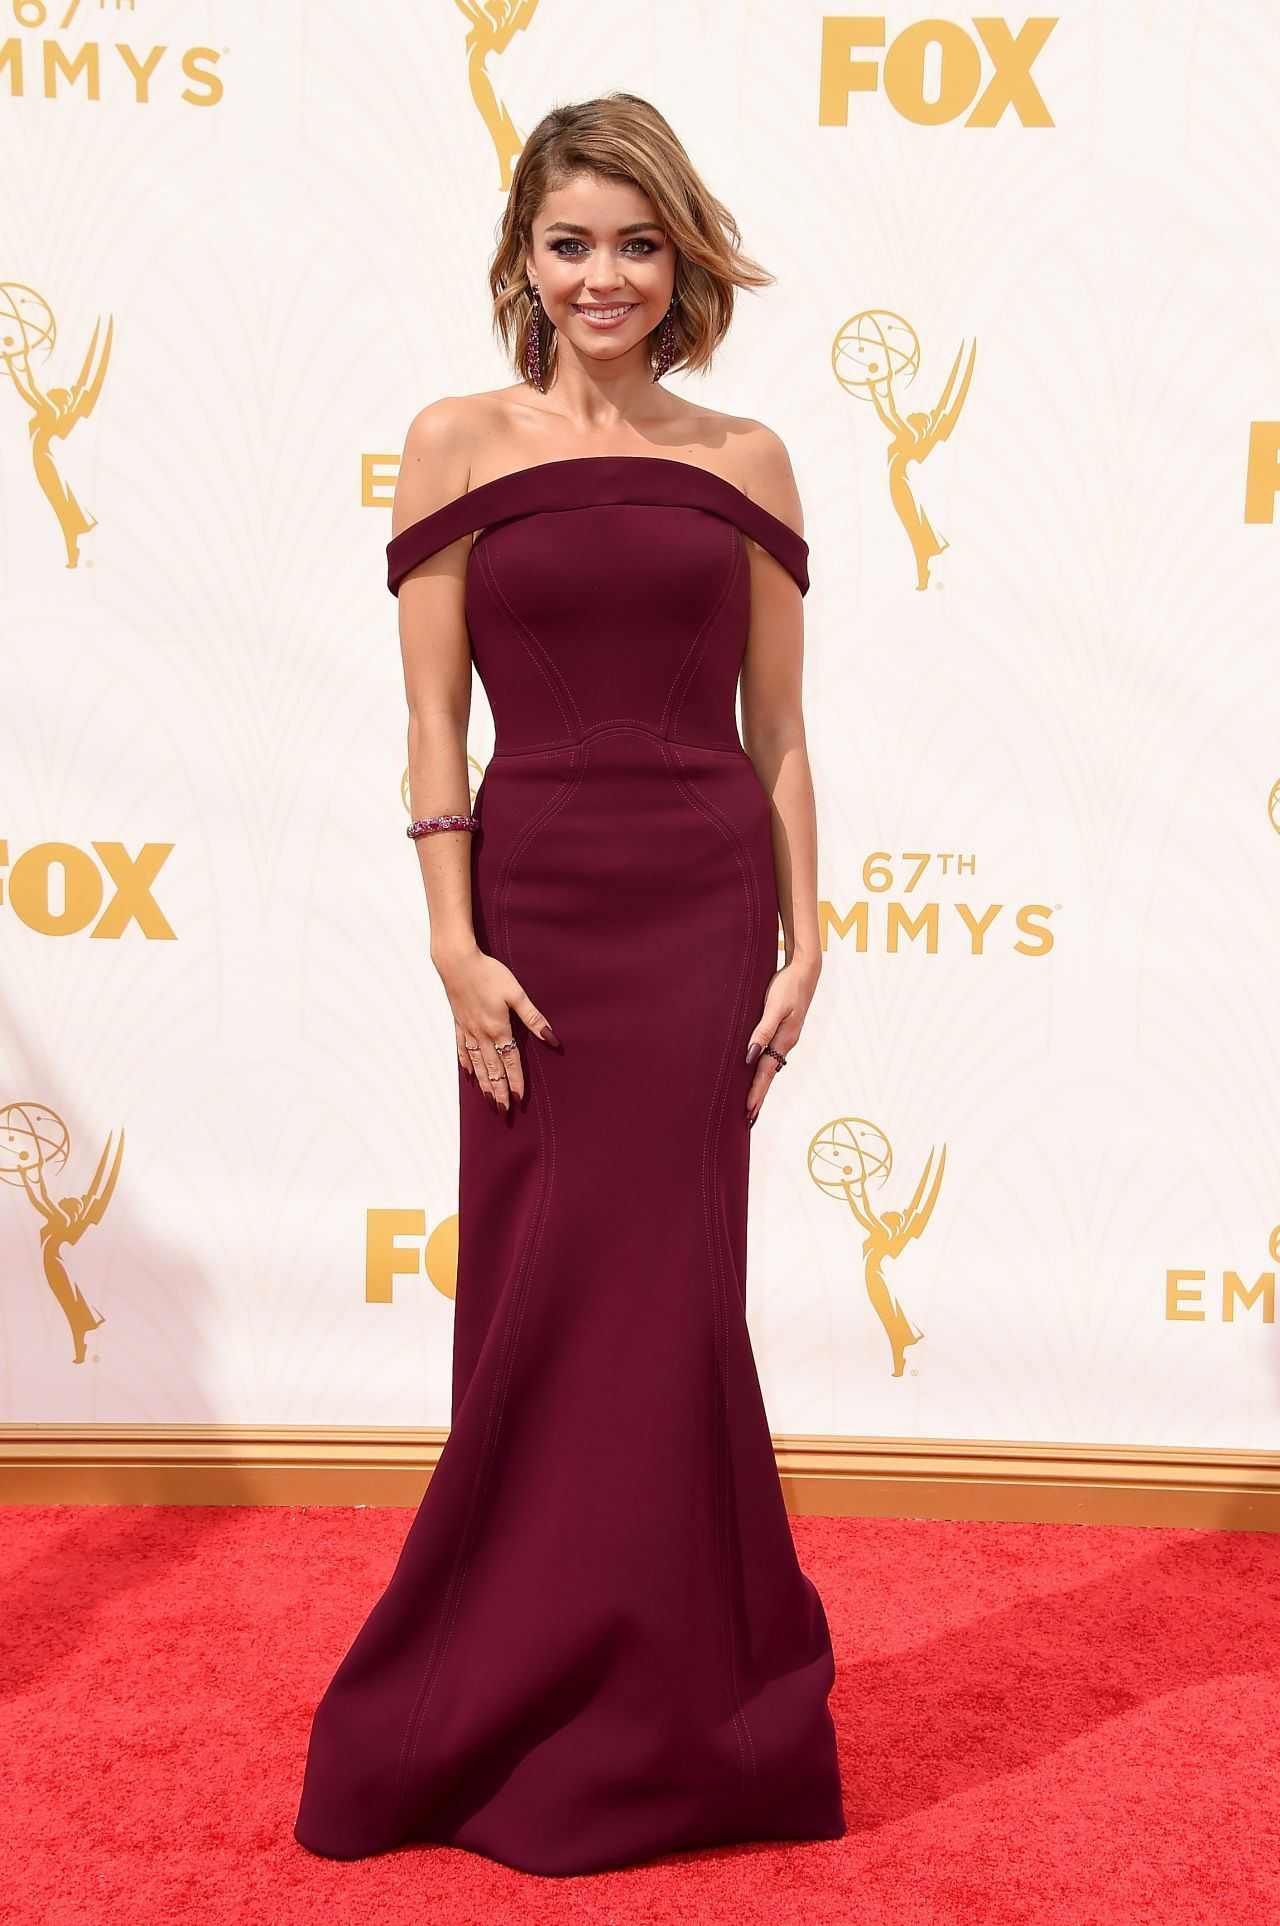 Samira wiley wedding dress  Best Dressed Ladies at the Emmys